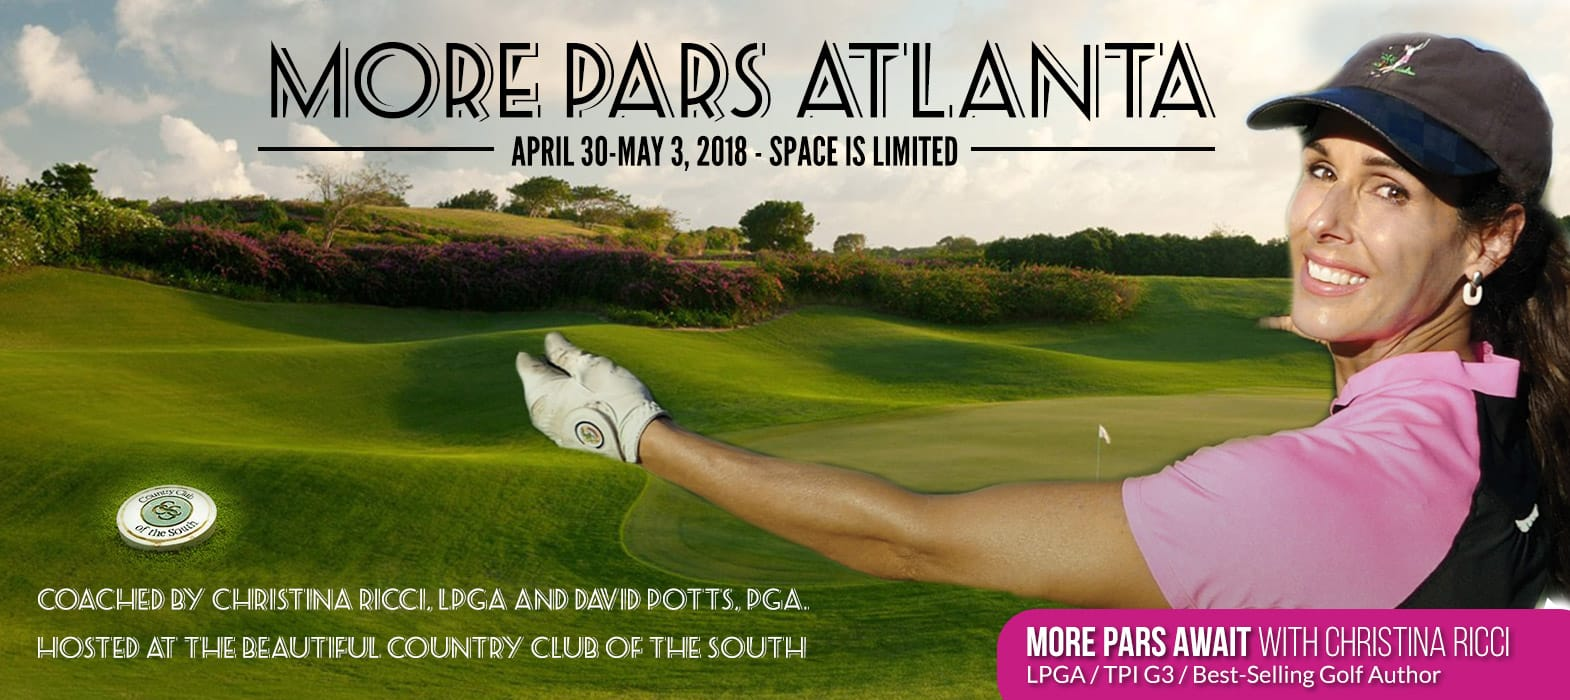 MORE PARS ATLANTA GOLF SCHOOL MARCH 4-8, 2018